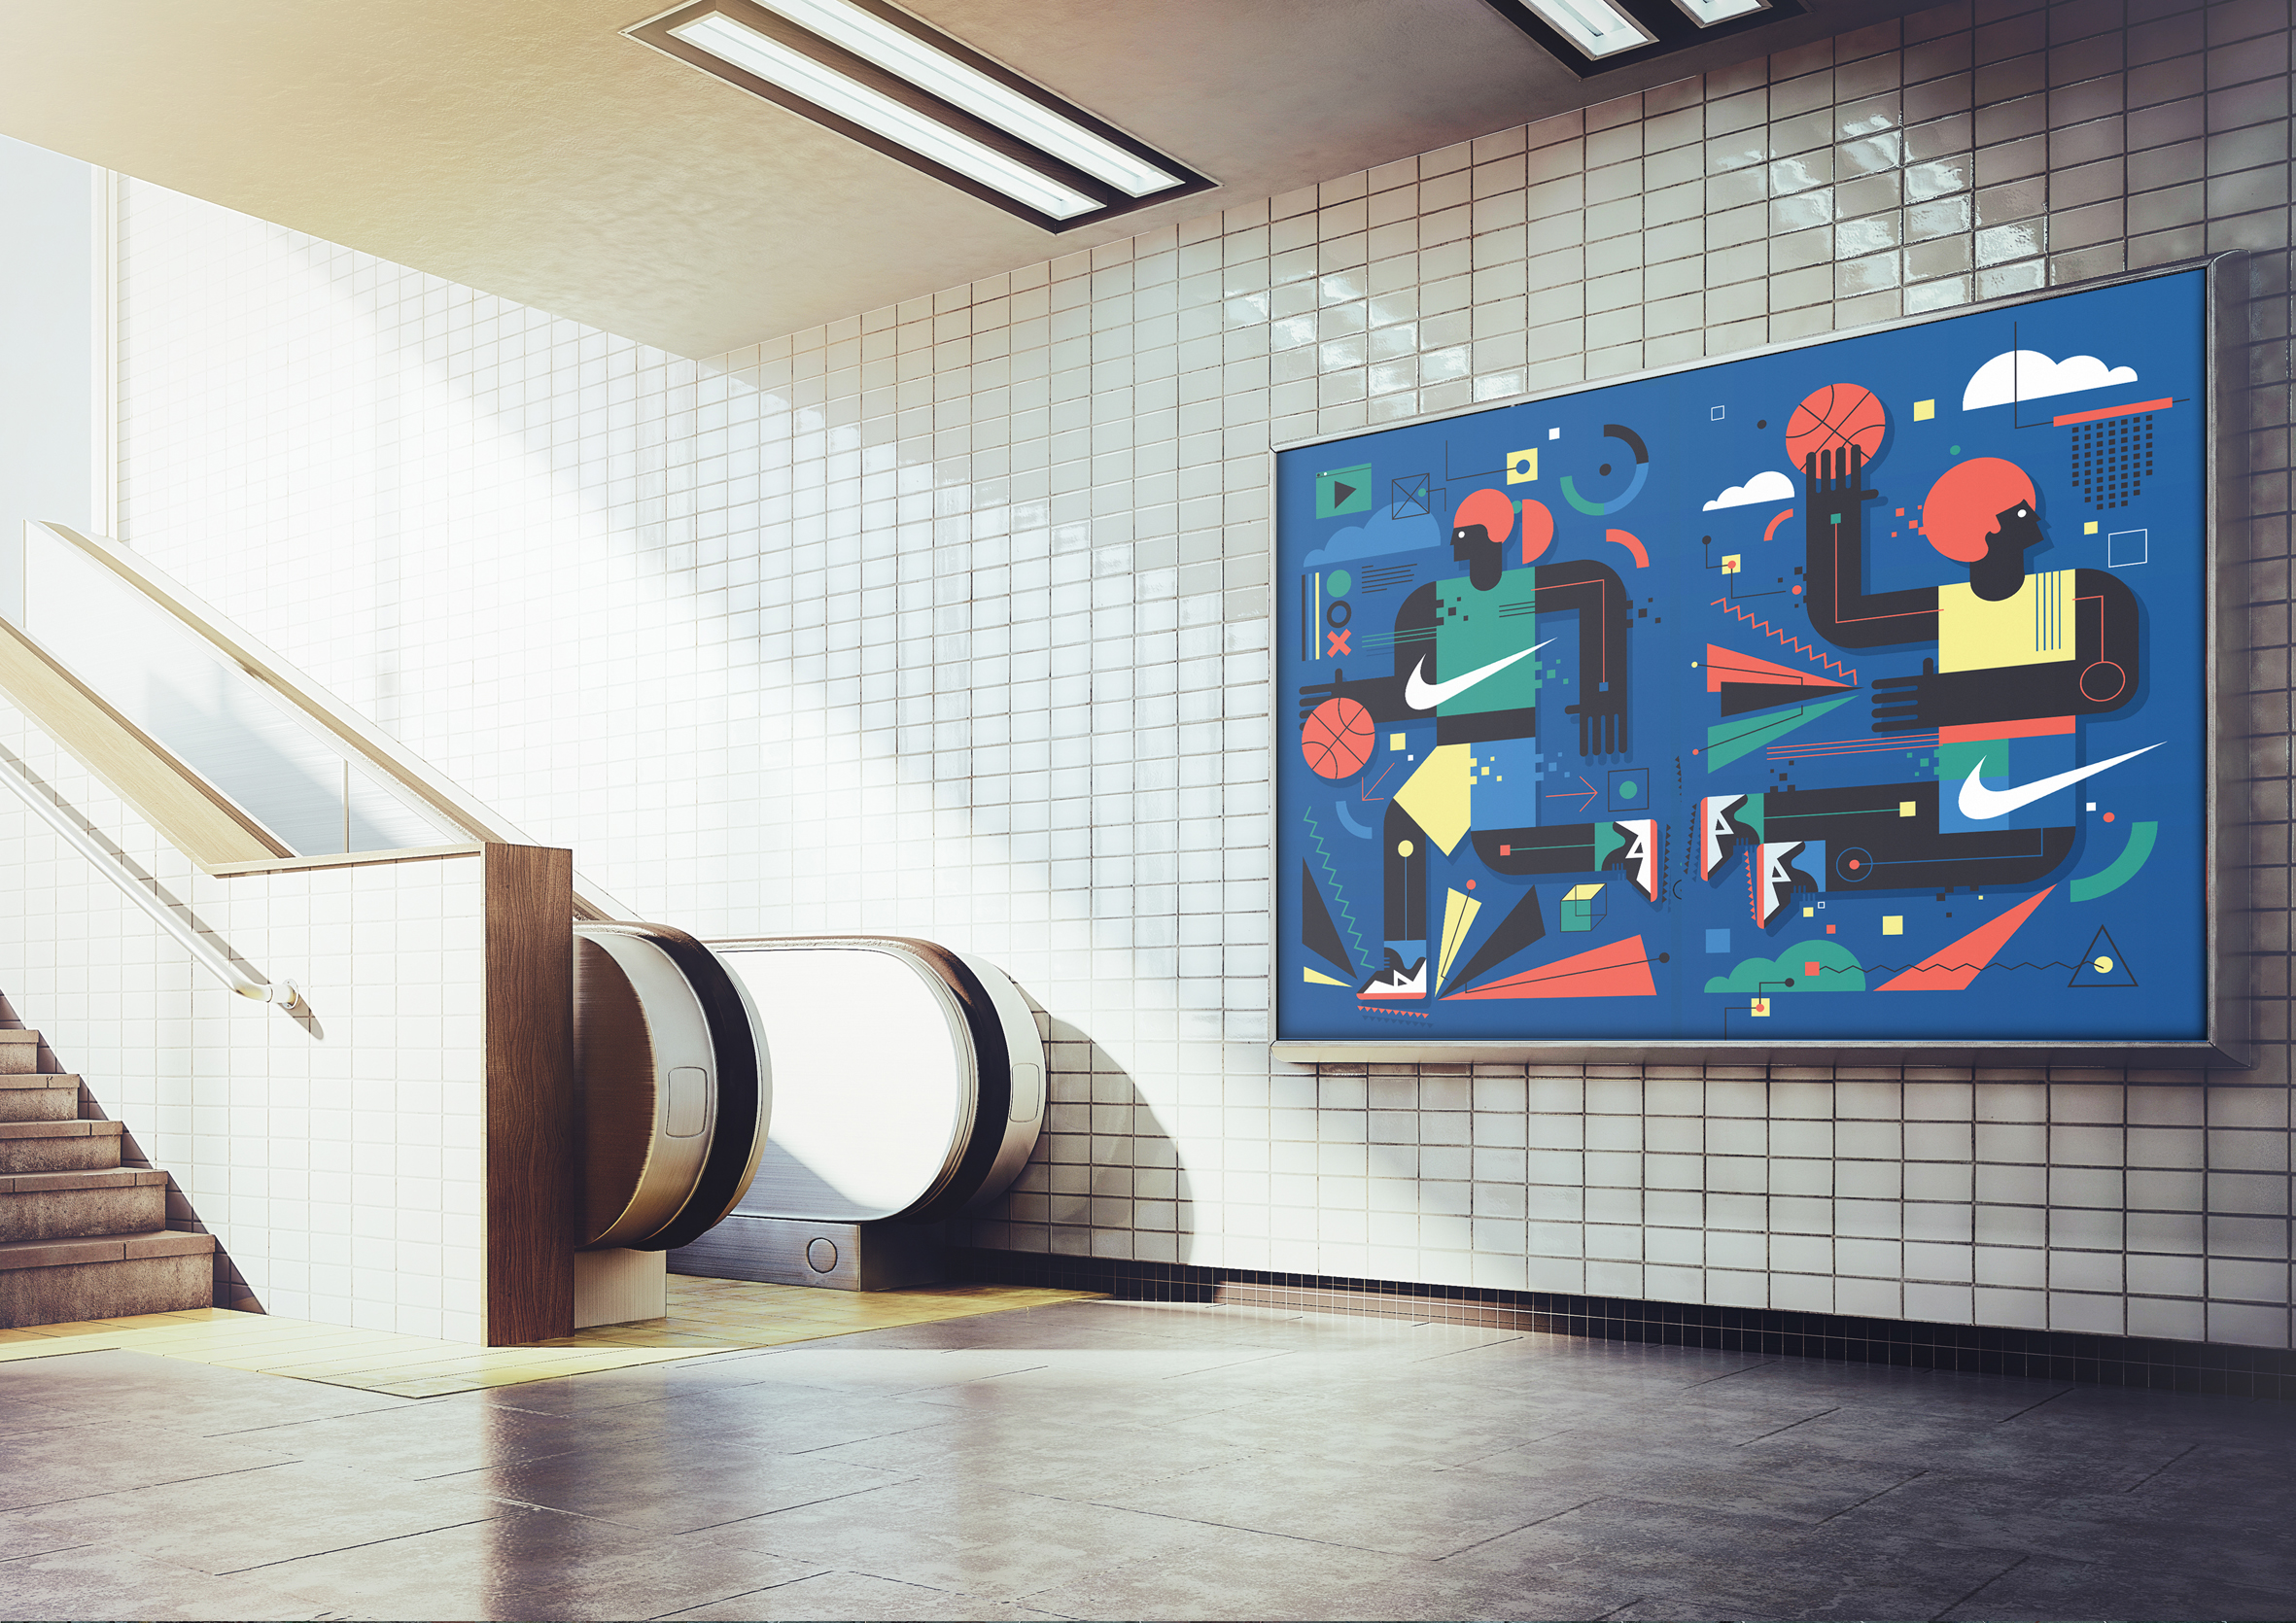 nike-basketball-wall-mural-neil-stevens-06